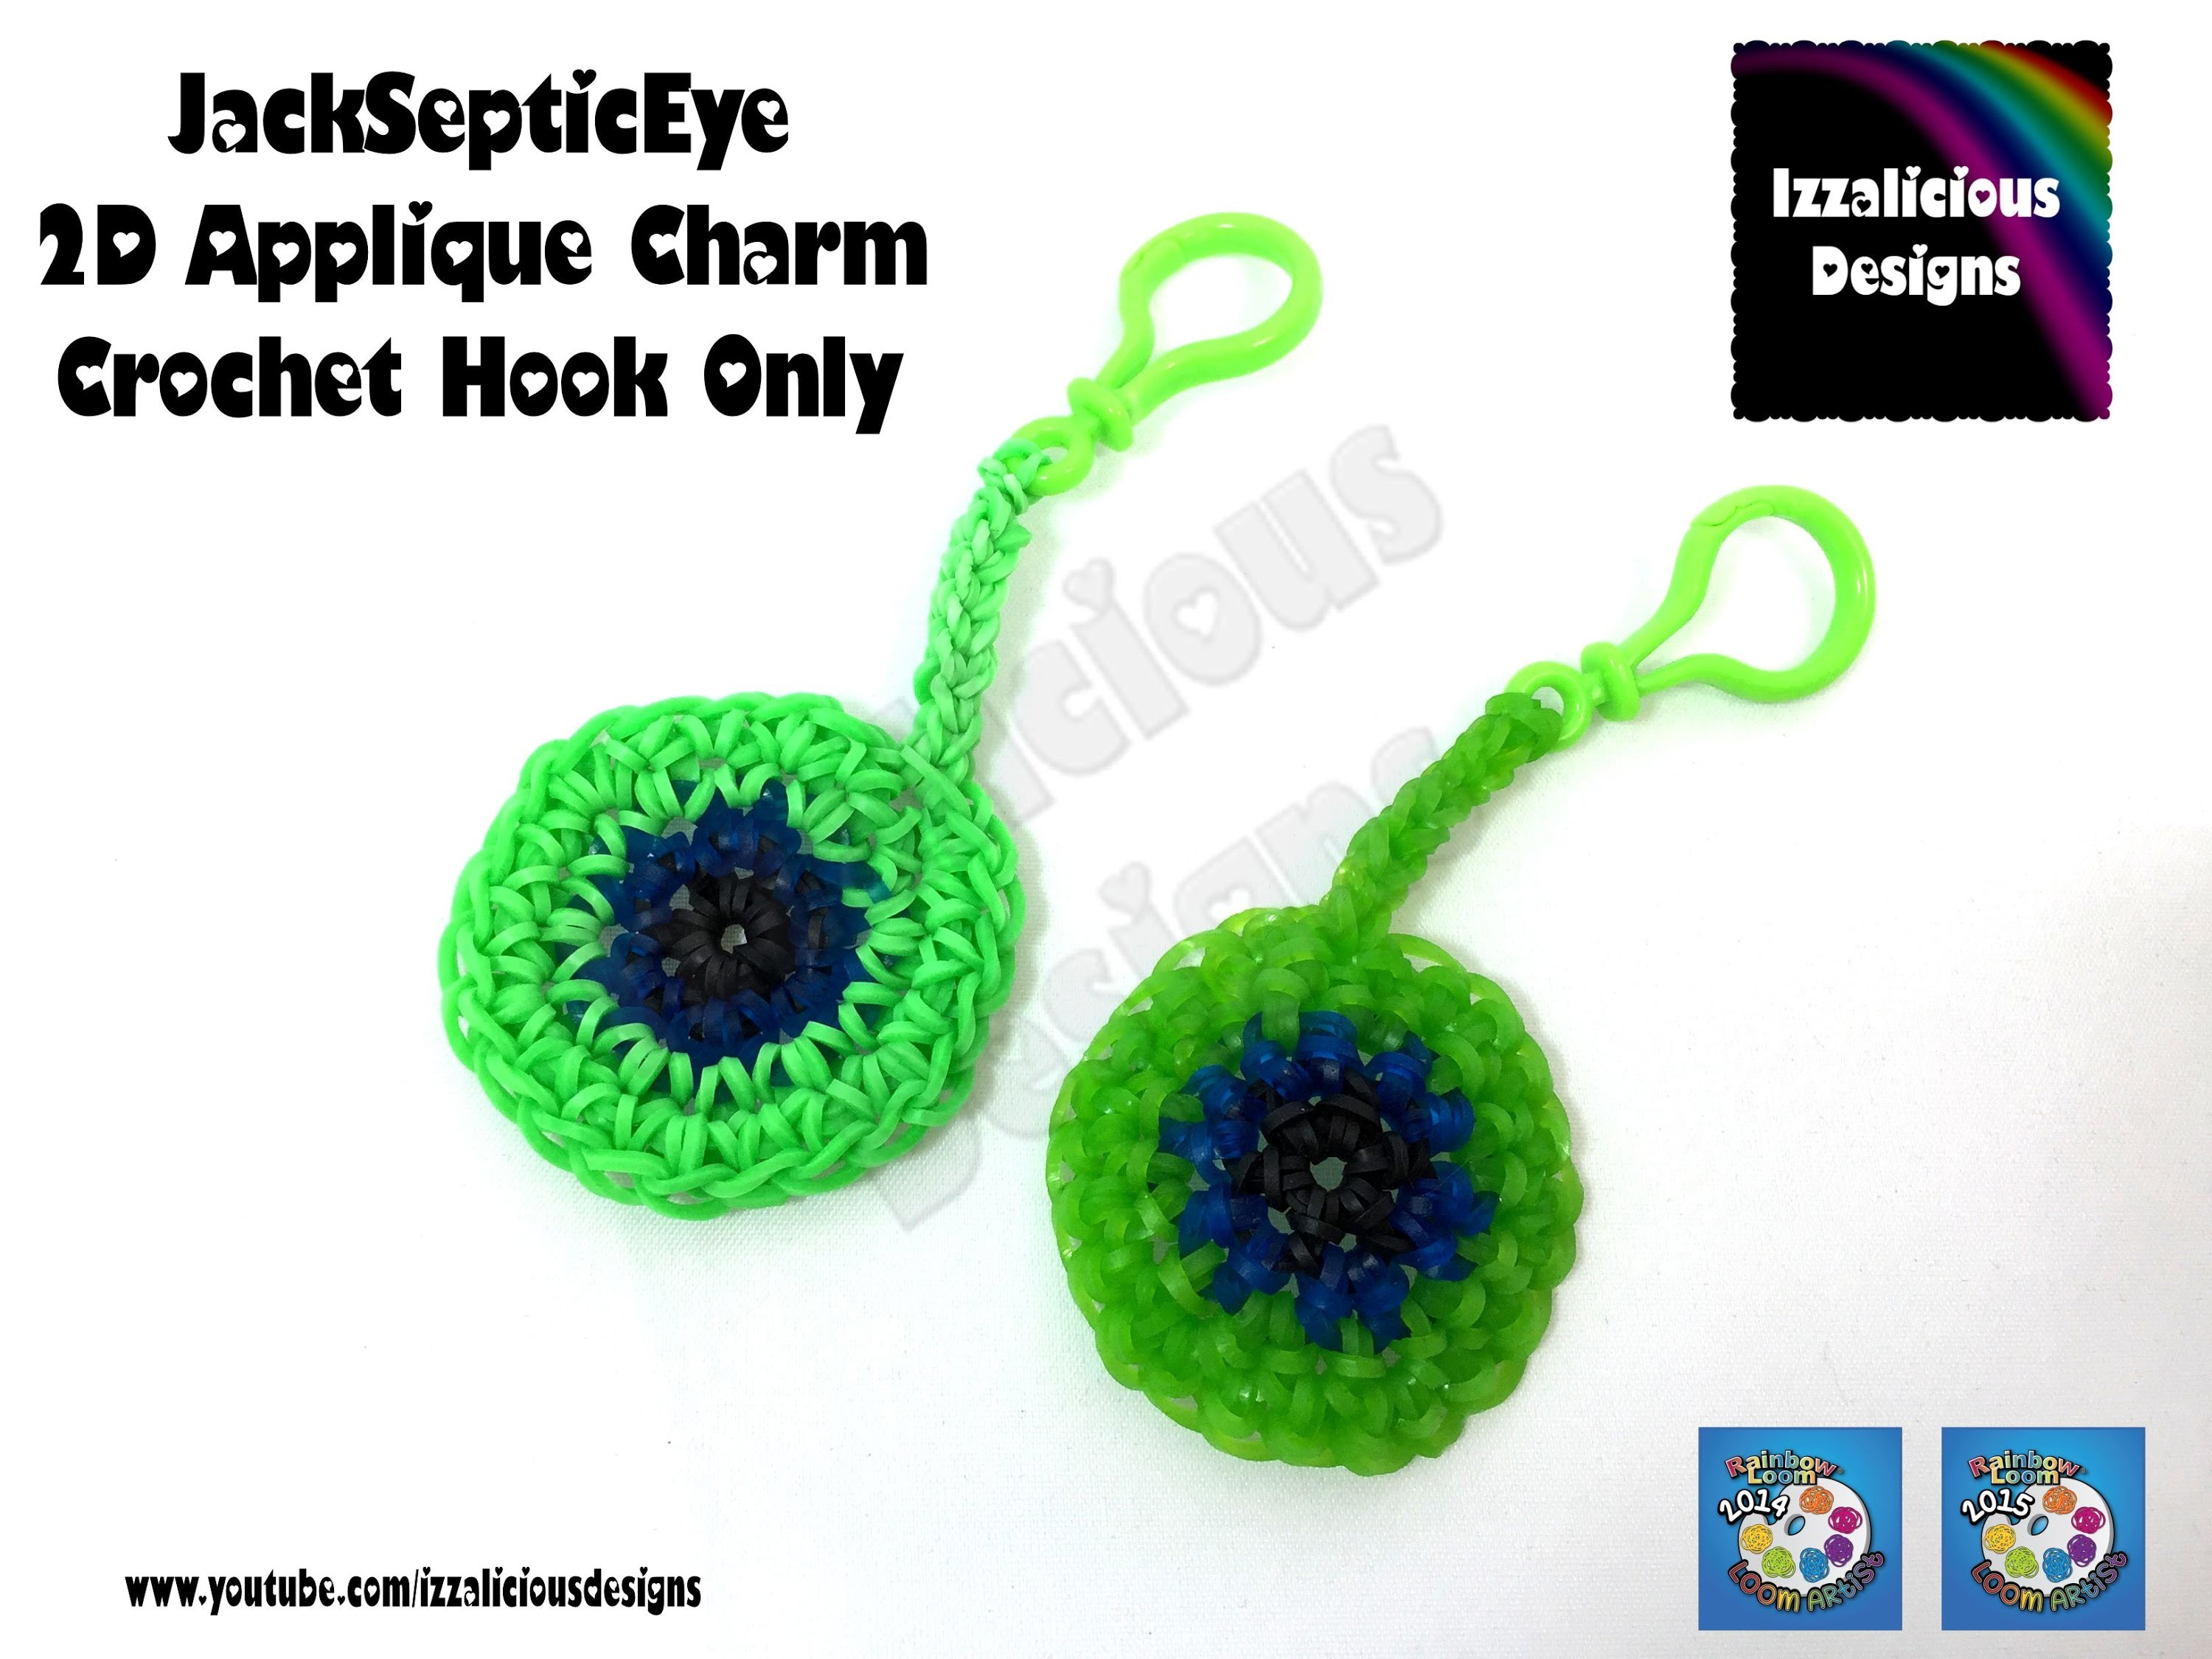 Rainbow Loom | JackSepticEye 2D Applique Charm | Hook only design